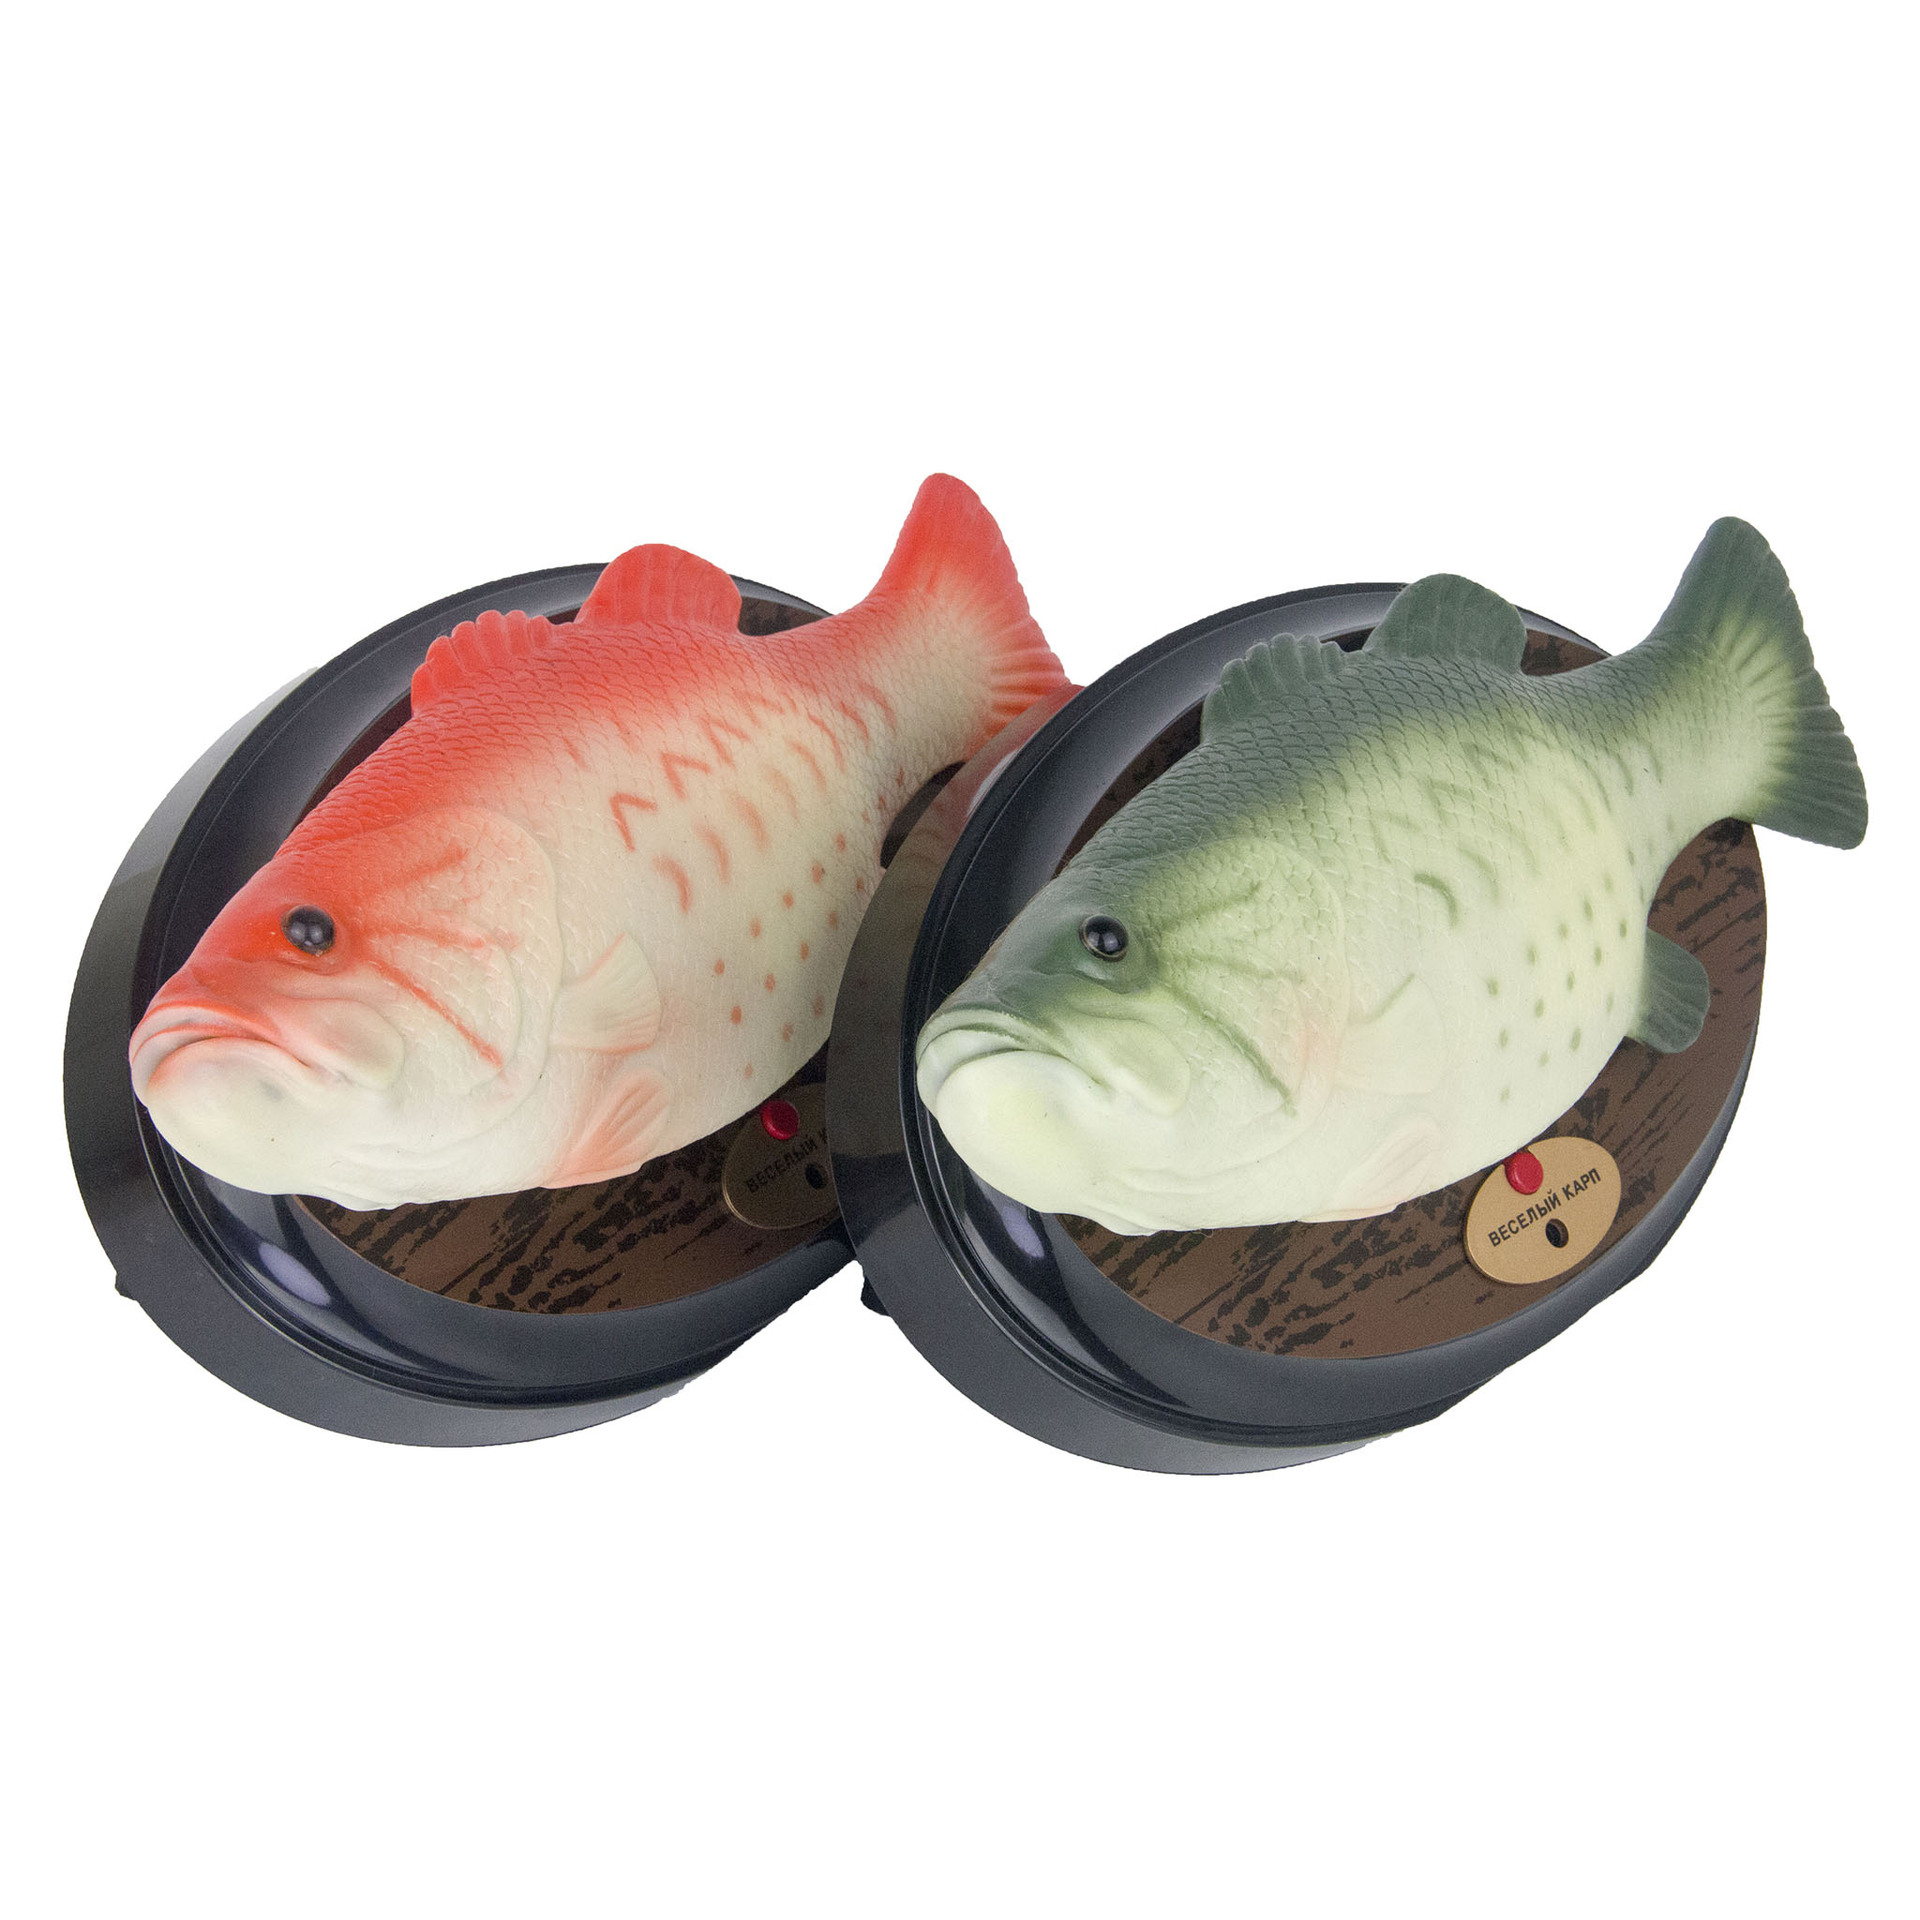 Funny Robot Electronic Fish Singing Toy Simulation Fishes Jump Battery Powered Novelty Spoof Music Toys Halloween Decoration